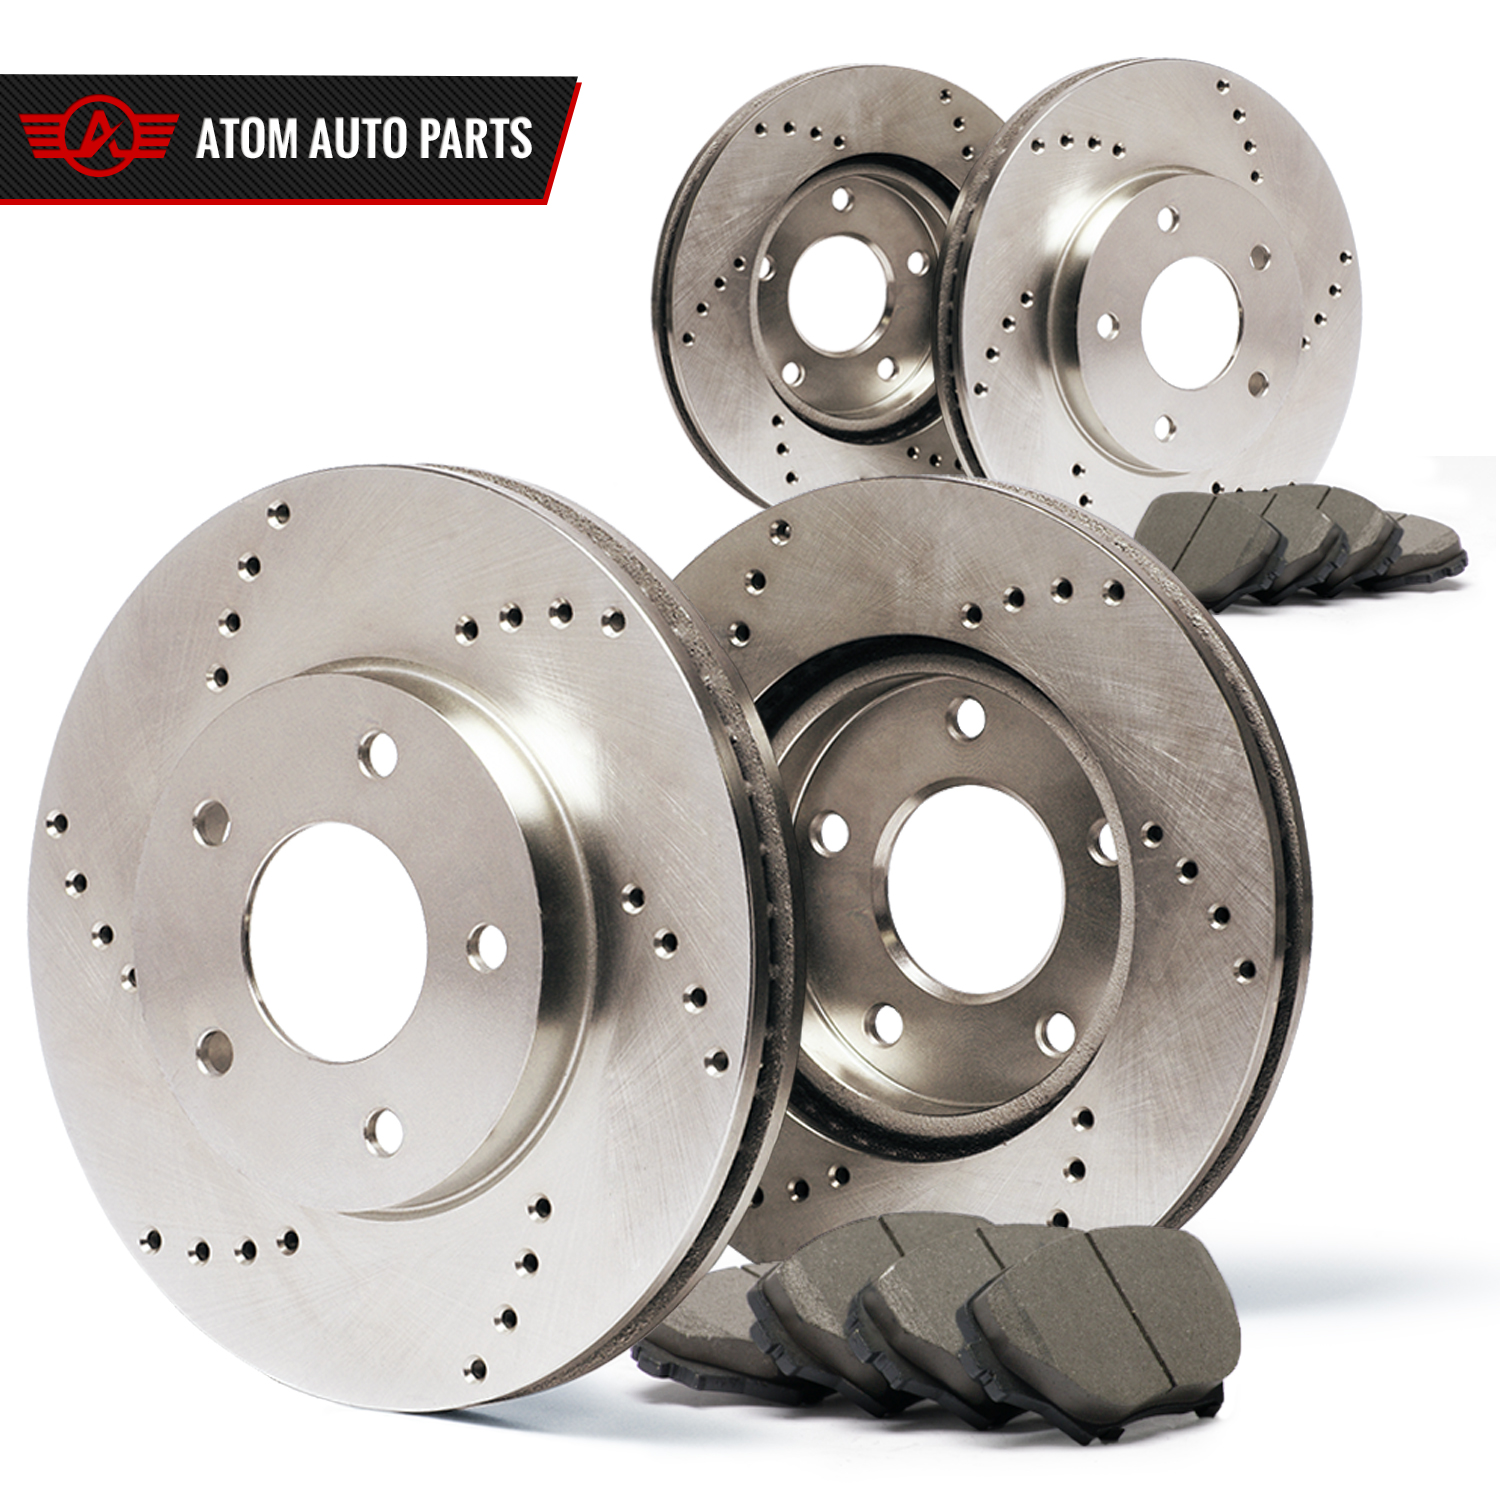 2008-Mercedes-Benz-ML320-See-Desc-Cross-Drilled-Rotors-Ceramic-Pads-F-R